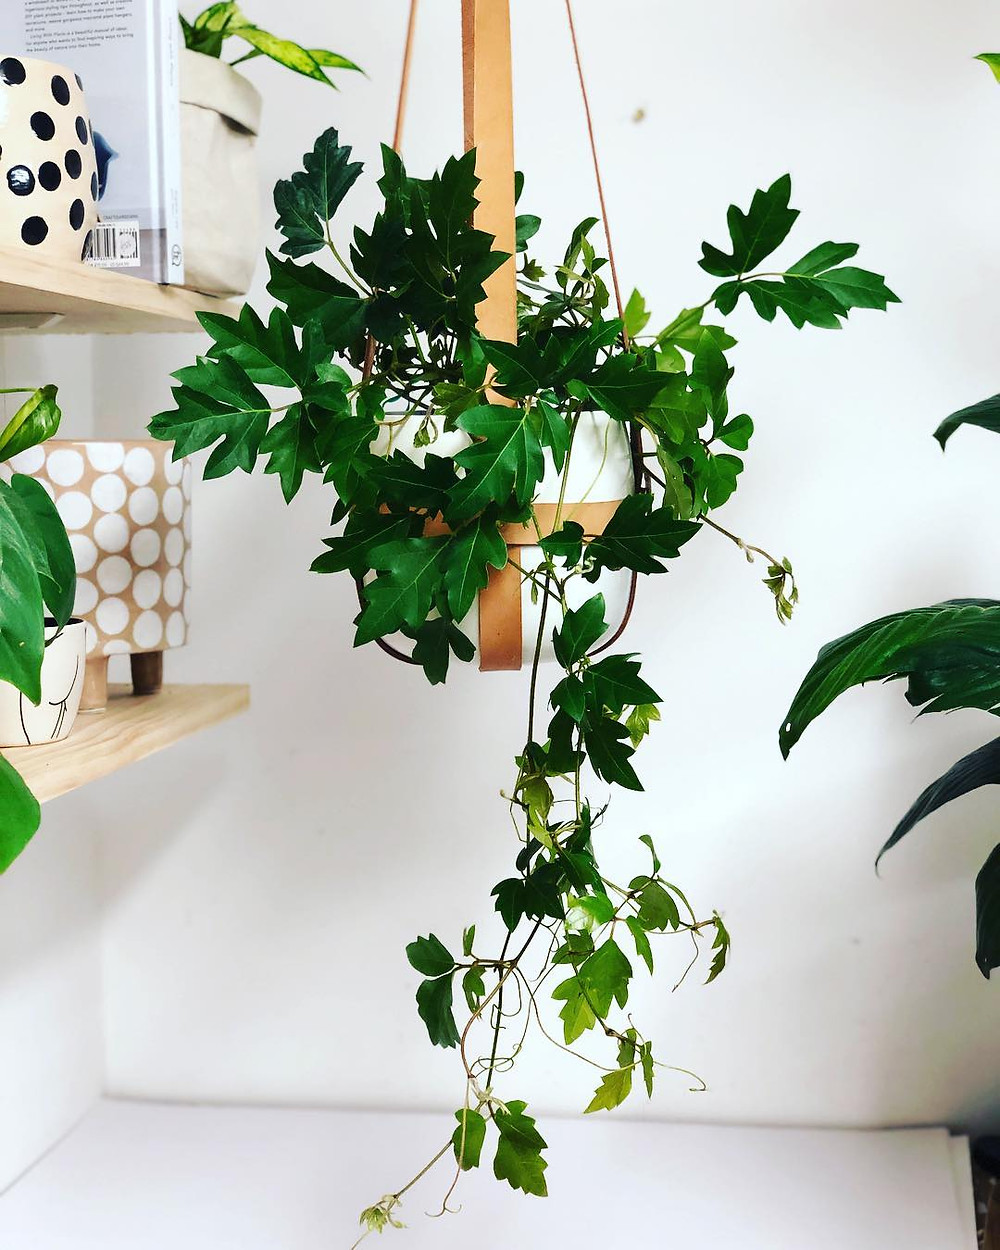 Grape Ivy Cissus rhombifolia Trailing Plants Hanging houseplants